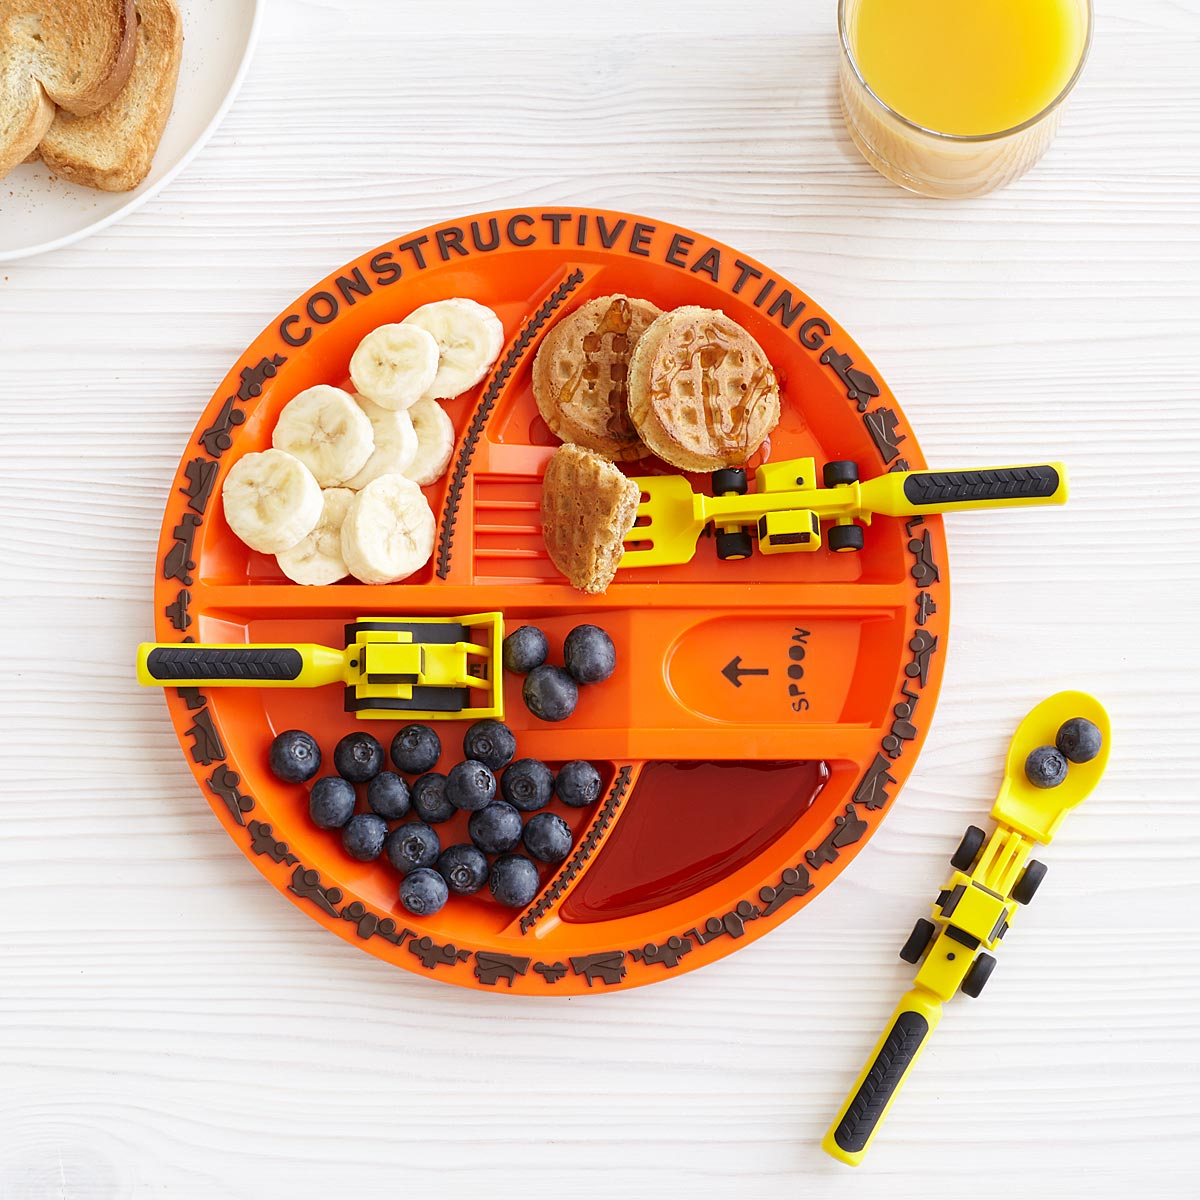 Constructive Eating 3-Piece Utensil and Matching Plate Set